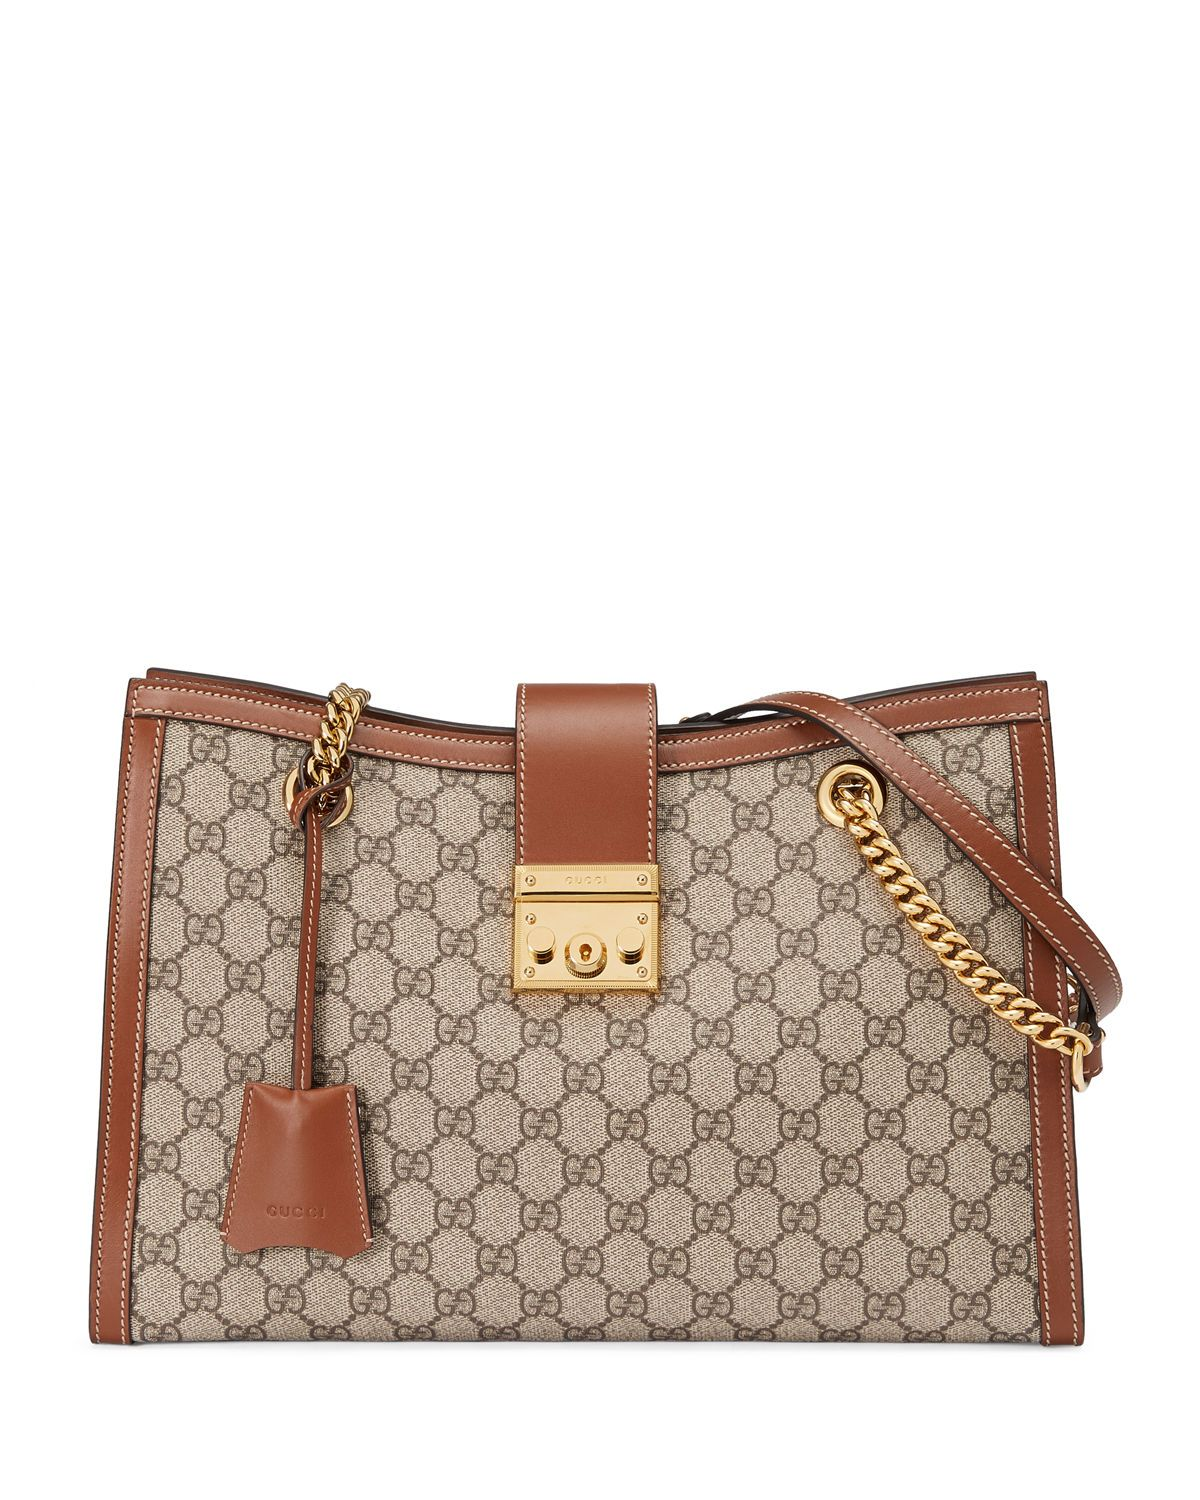 dcac7326044440 Gucci Padlock GG Supreme Canvas Medium Shoulder Bag | Neiman Marcus